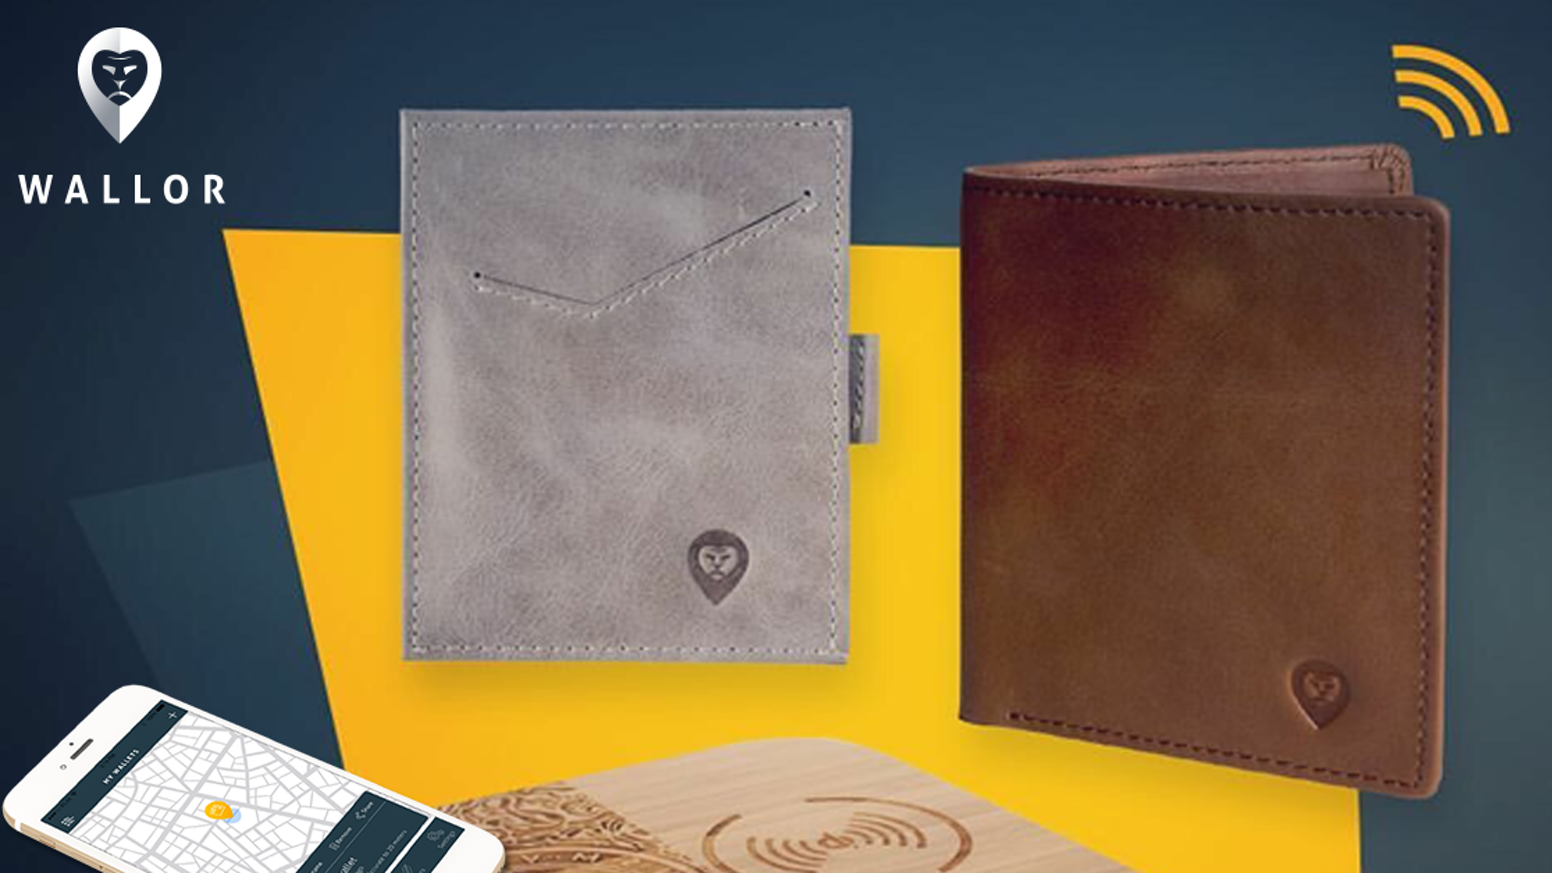 Wallor: RFID Wallet with GPS Tracking and Anti-Theft Alarm